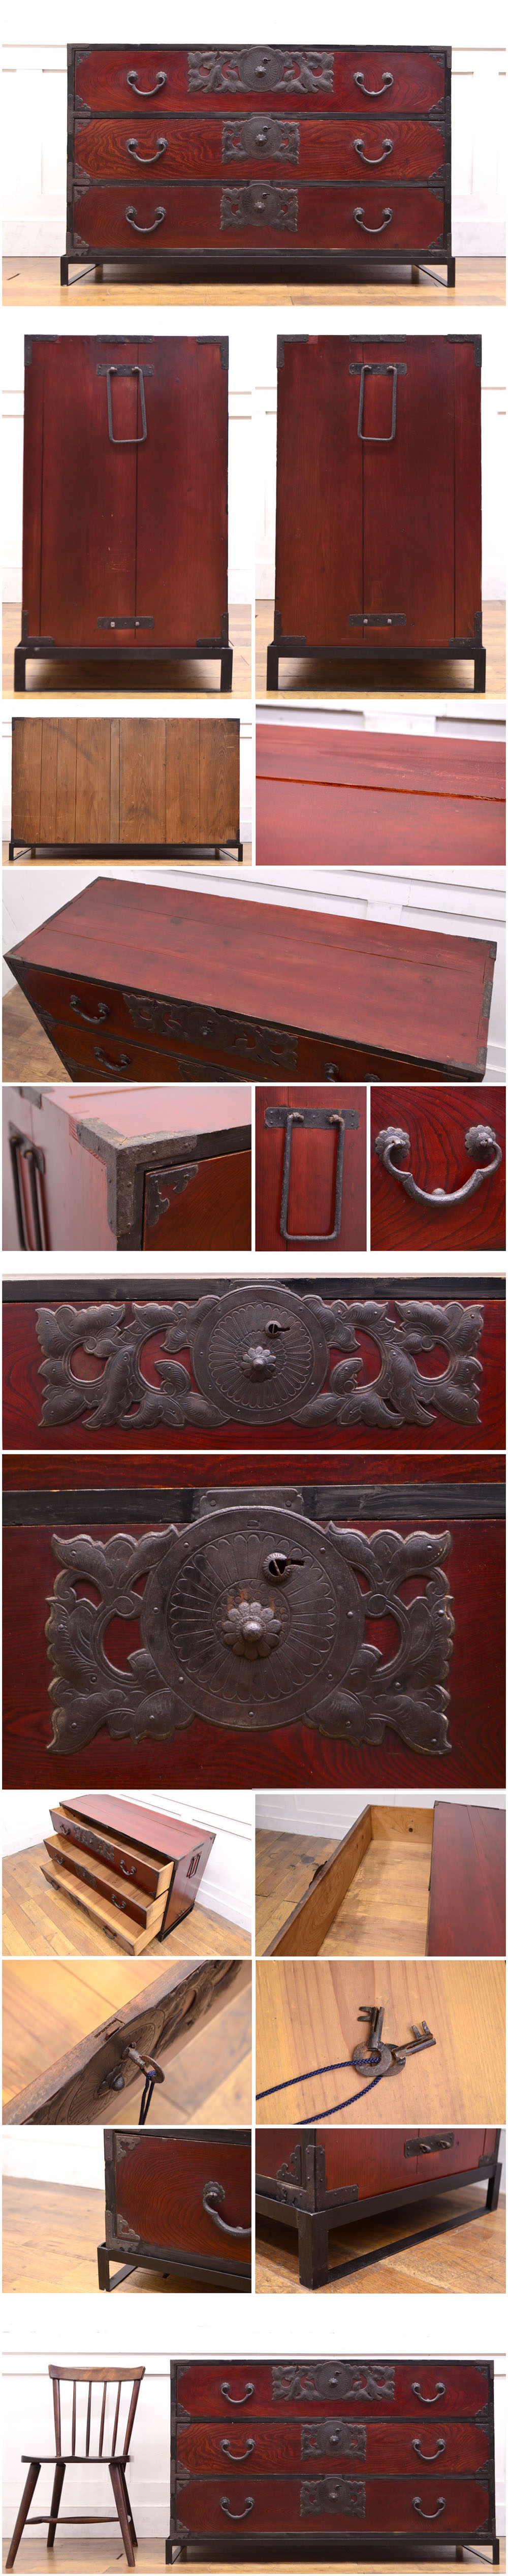 Iz23169y era chest of drawers hand strike gold thing for Sideboard real